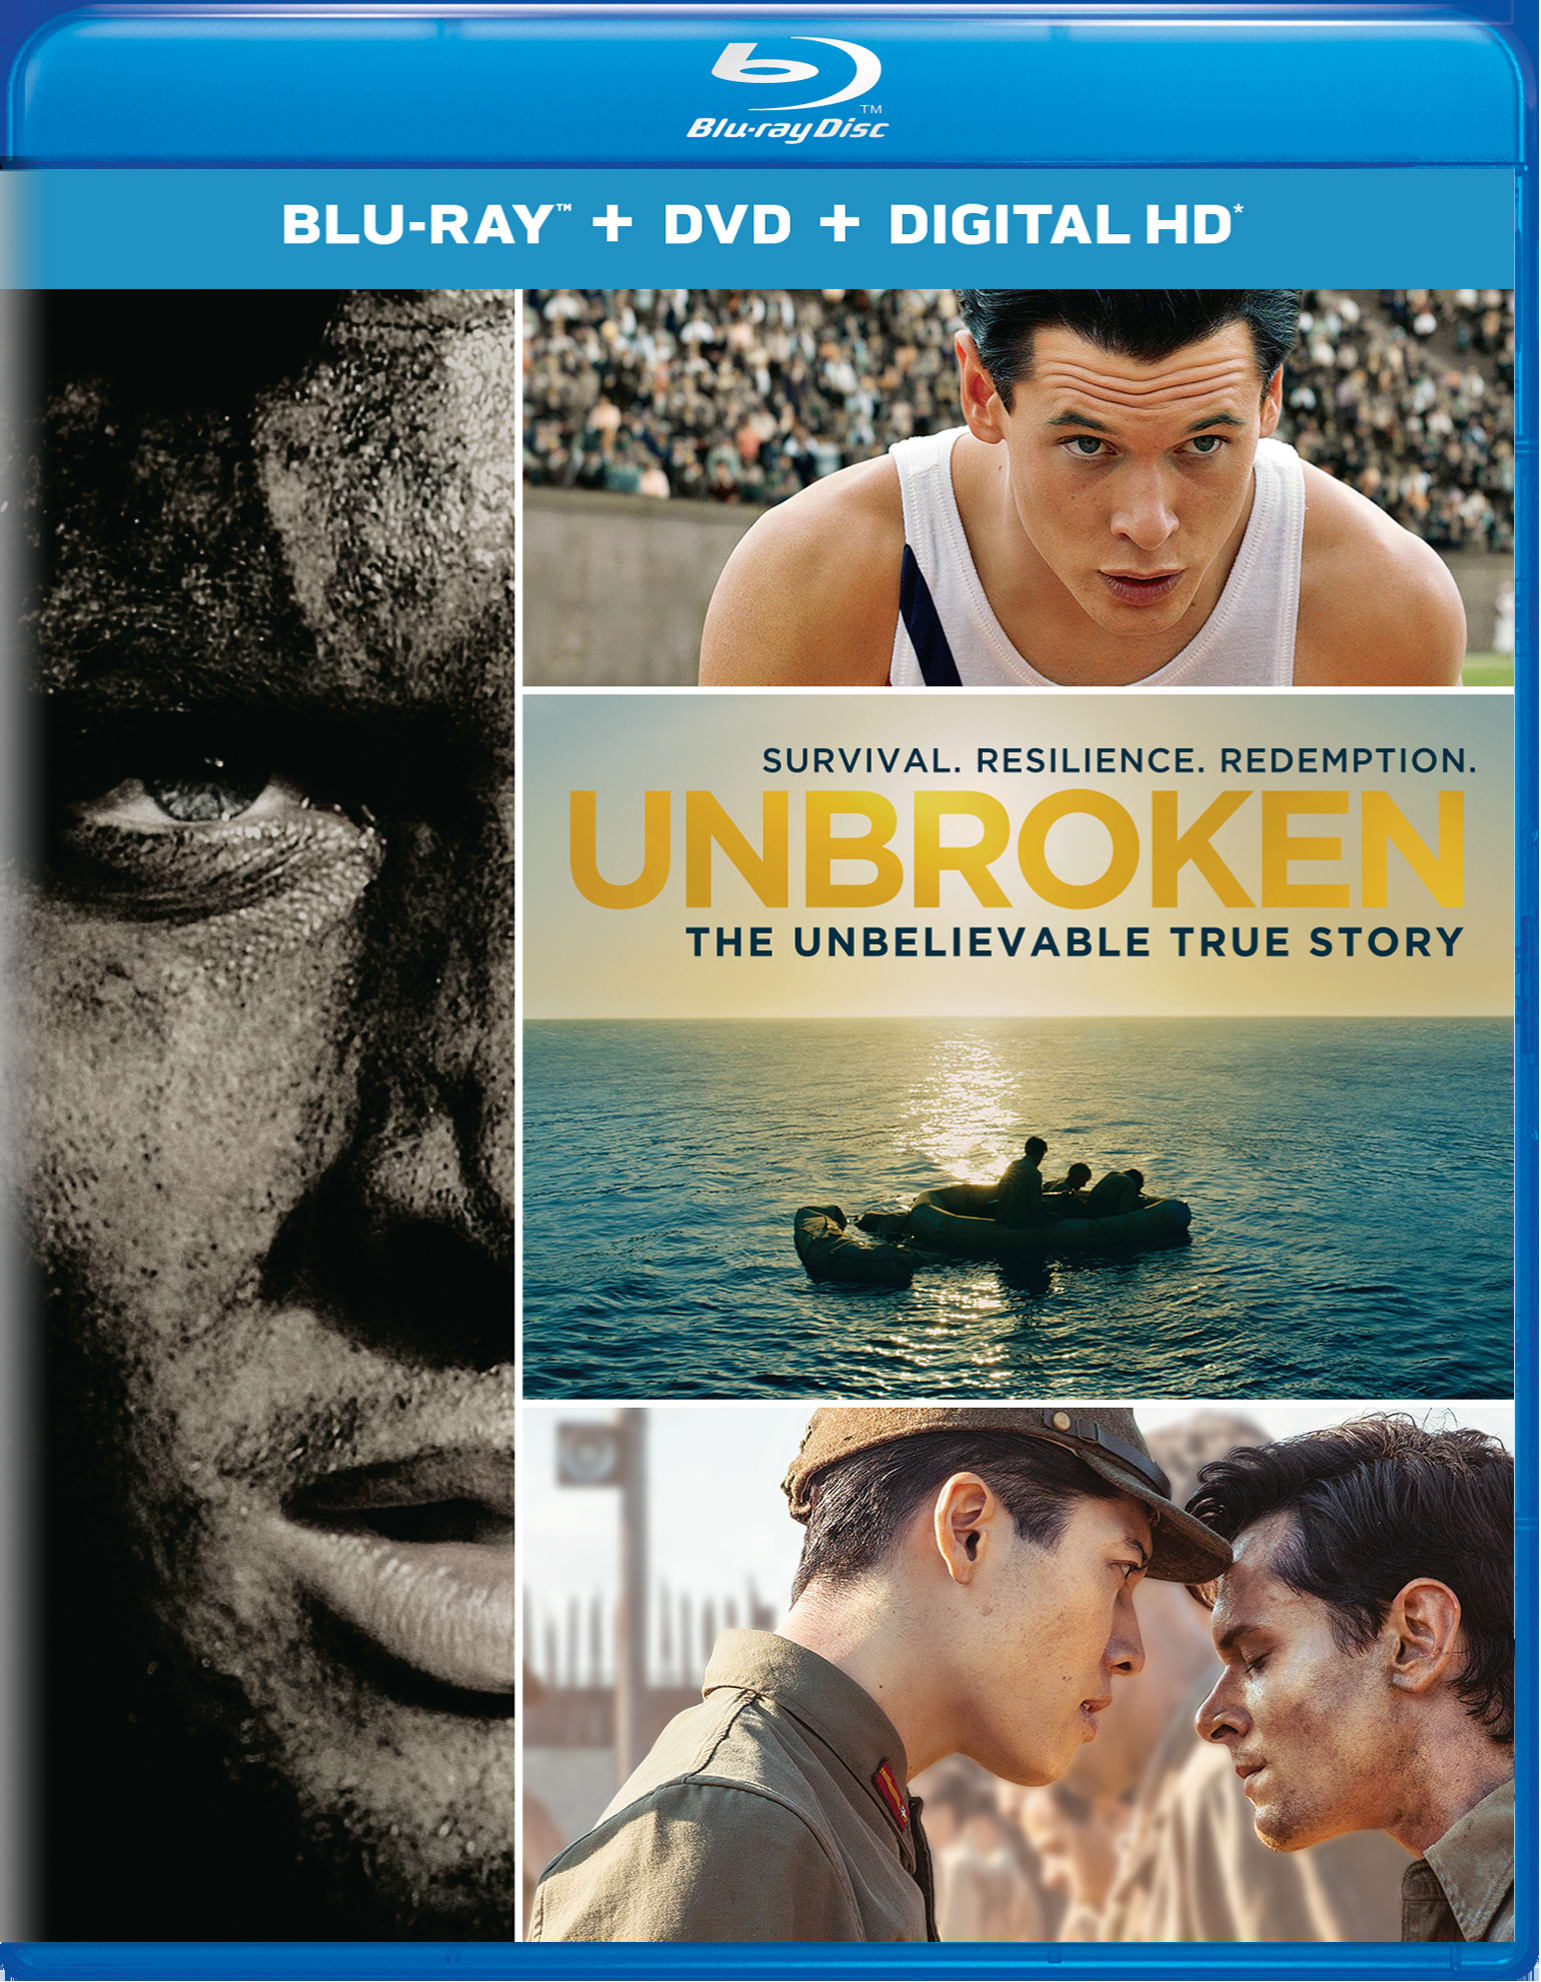 Unbroken (DVD + Digital) [Blu-ray]